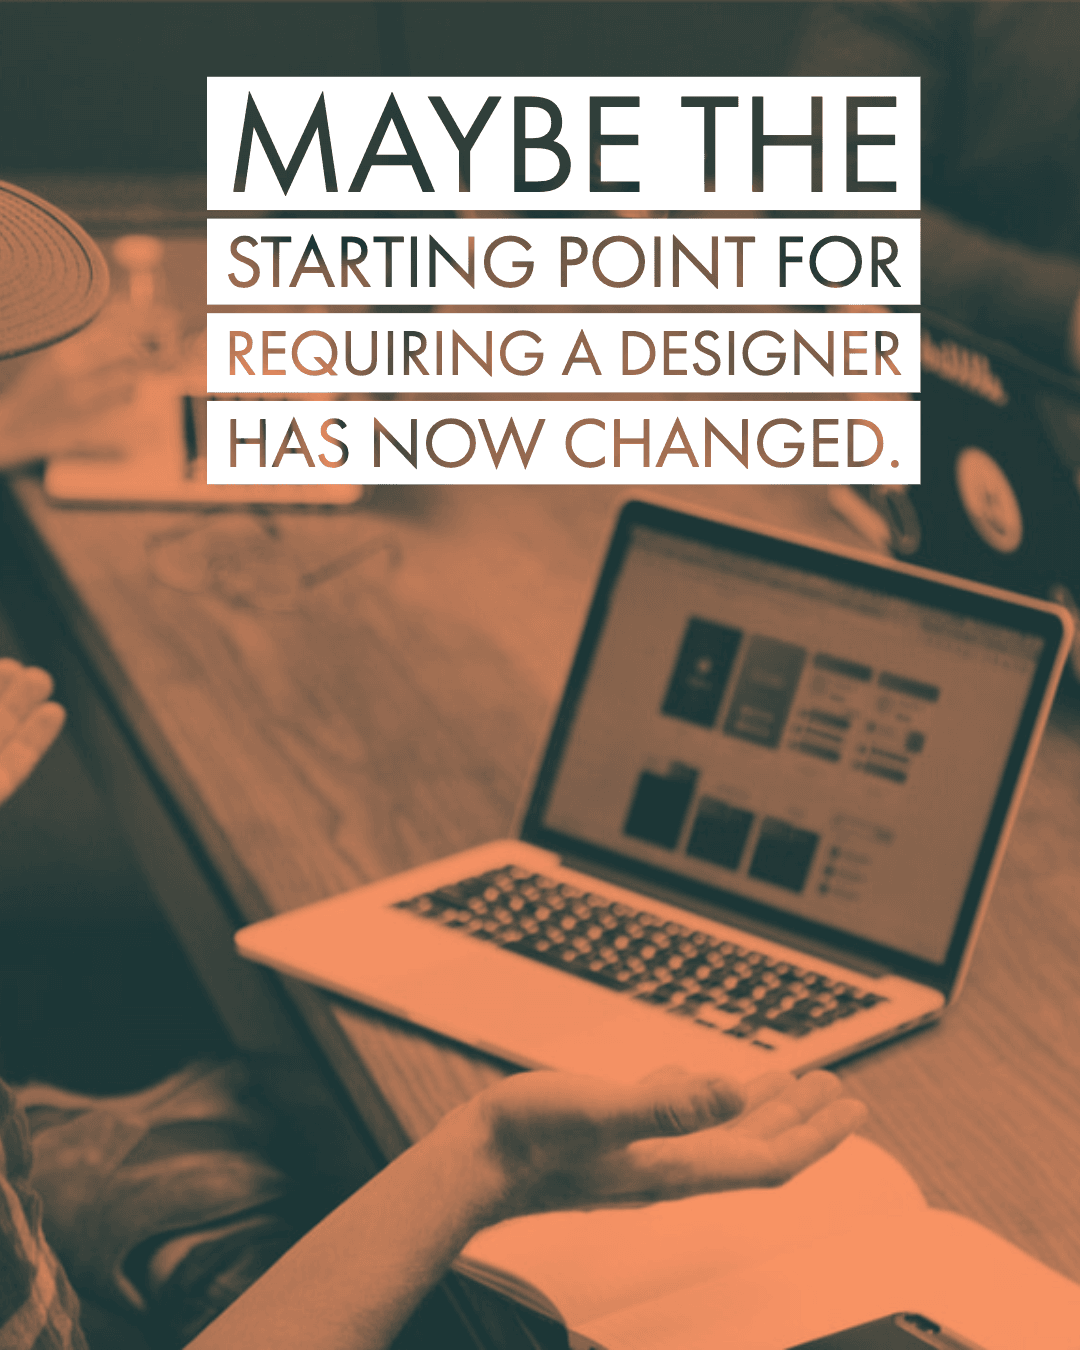 Maybe the starting point of needing designer has changed?